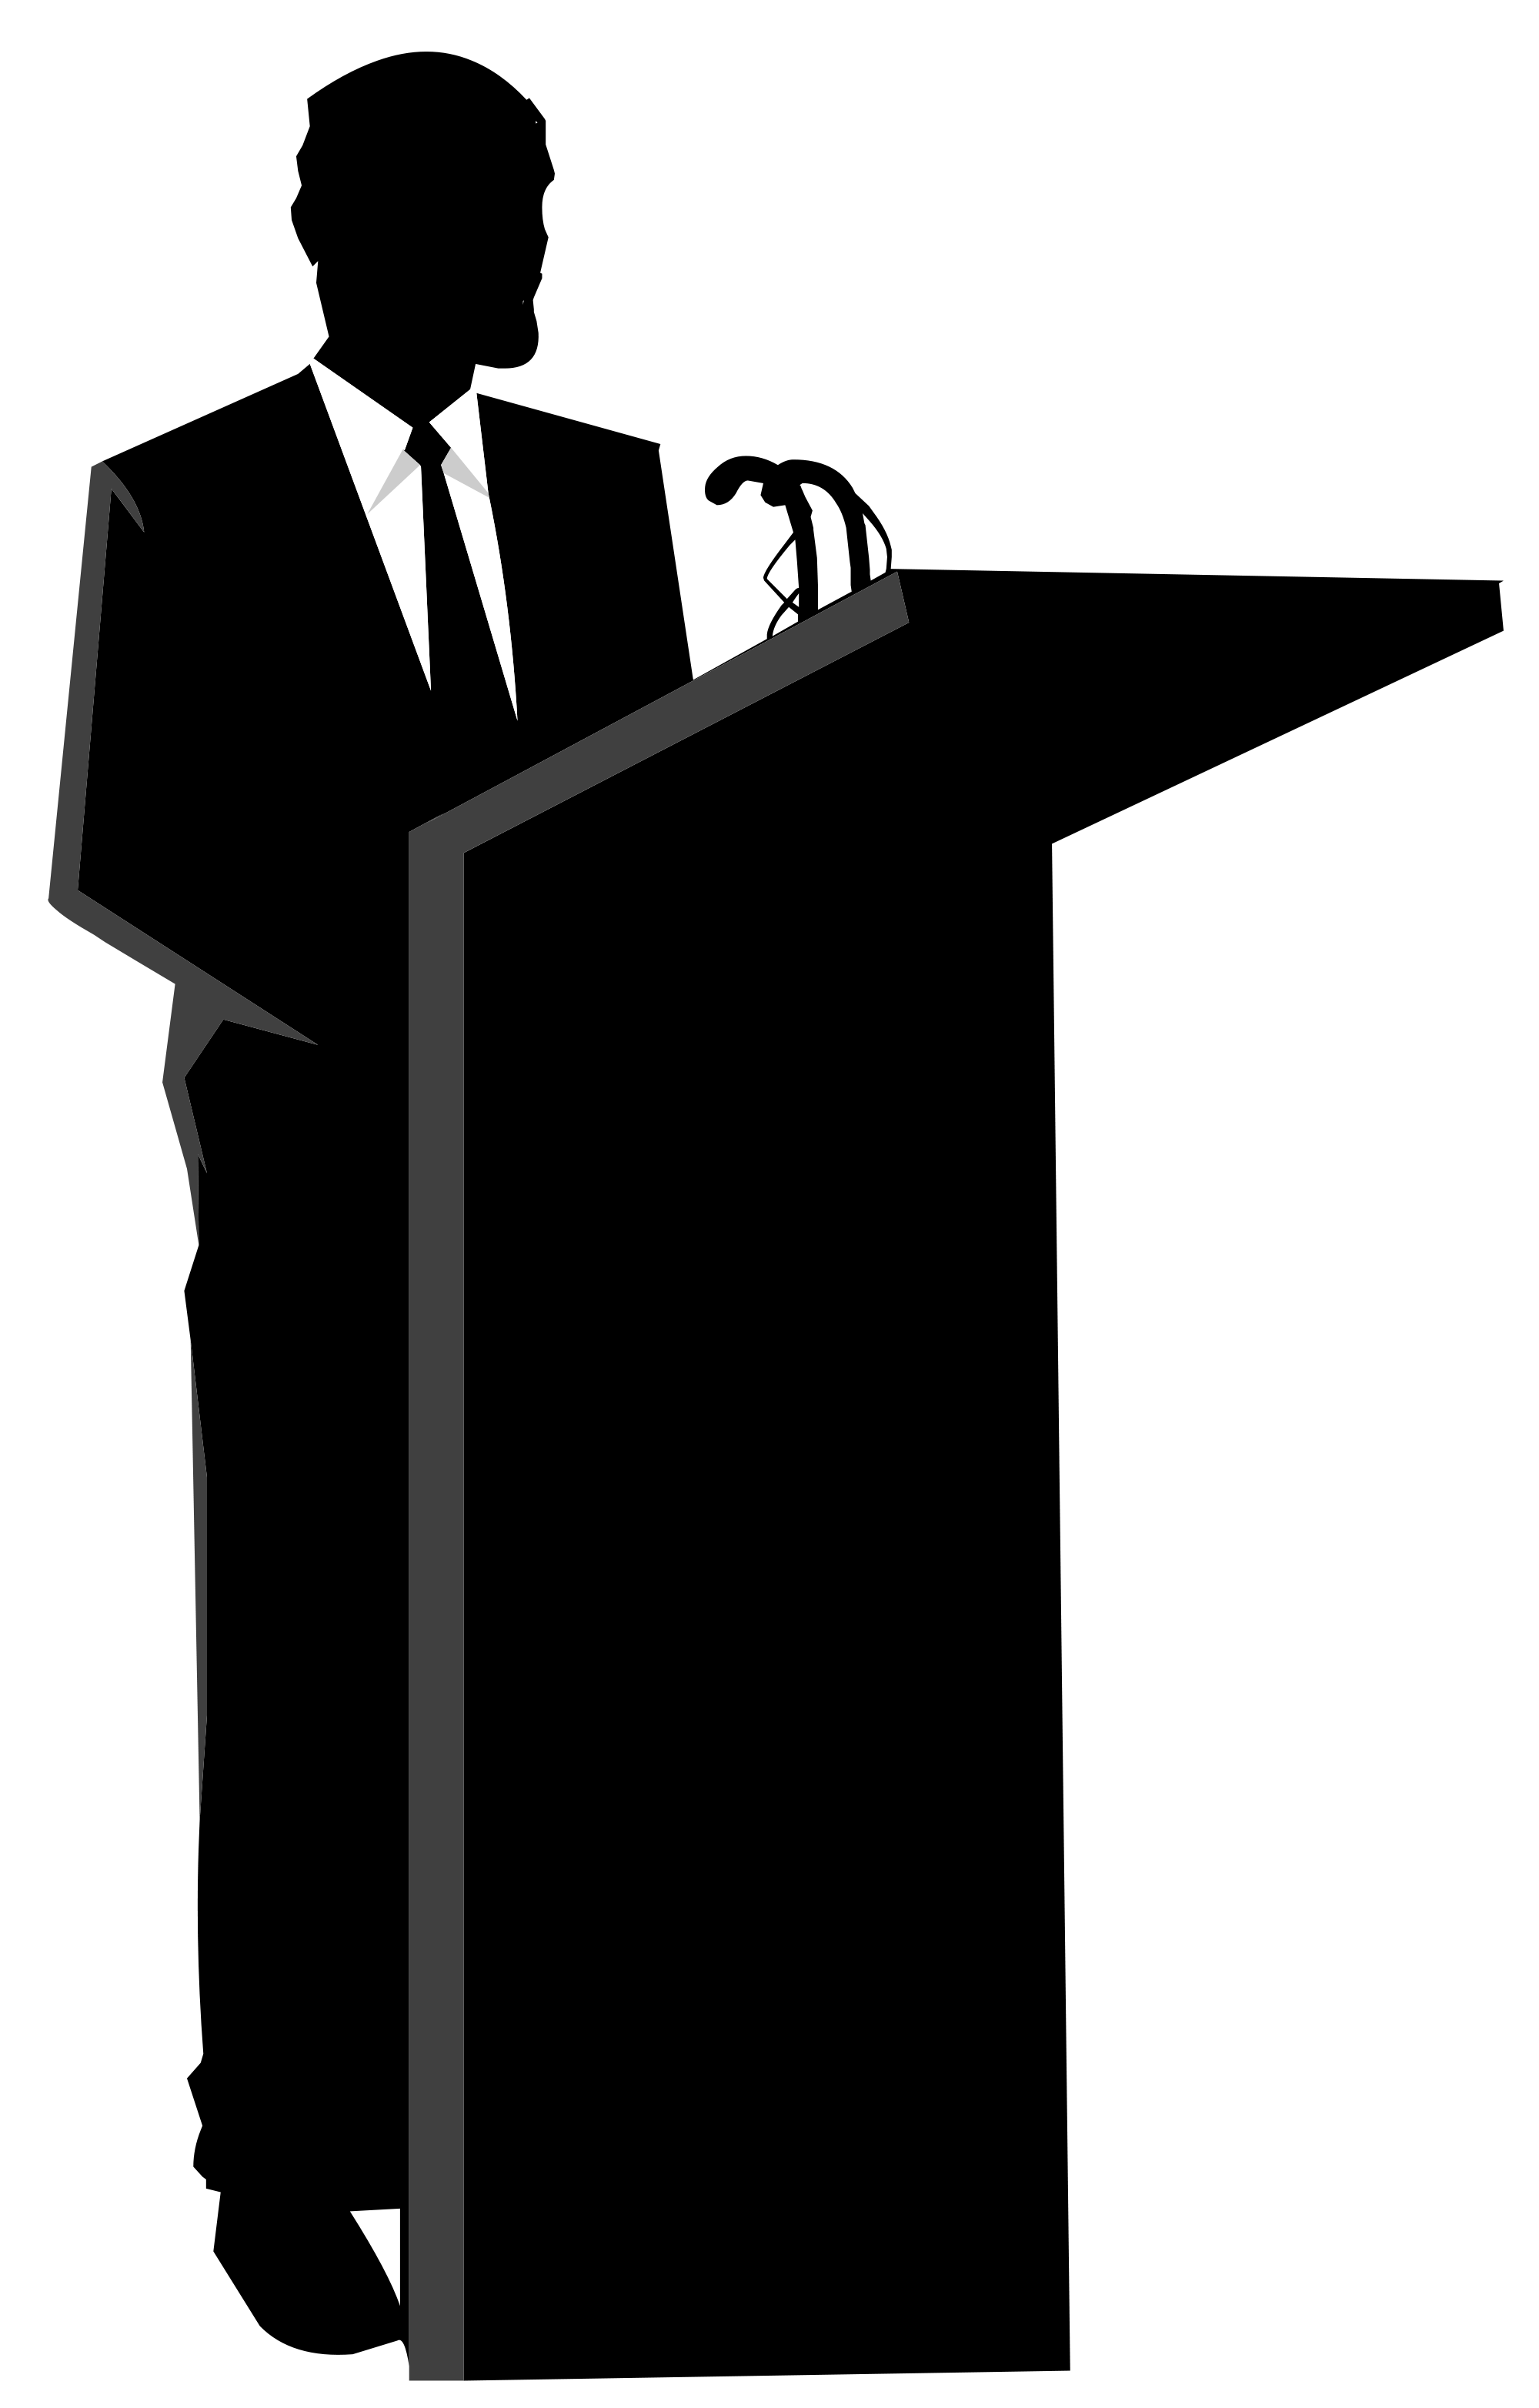 Public speaker clipart clipart images gallery for free.